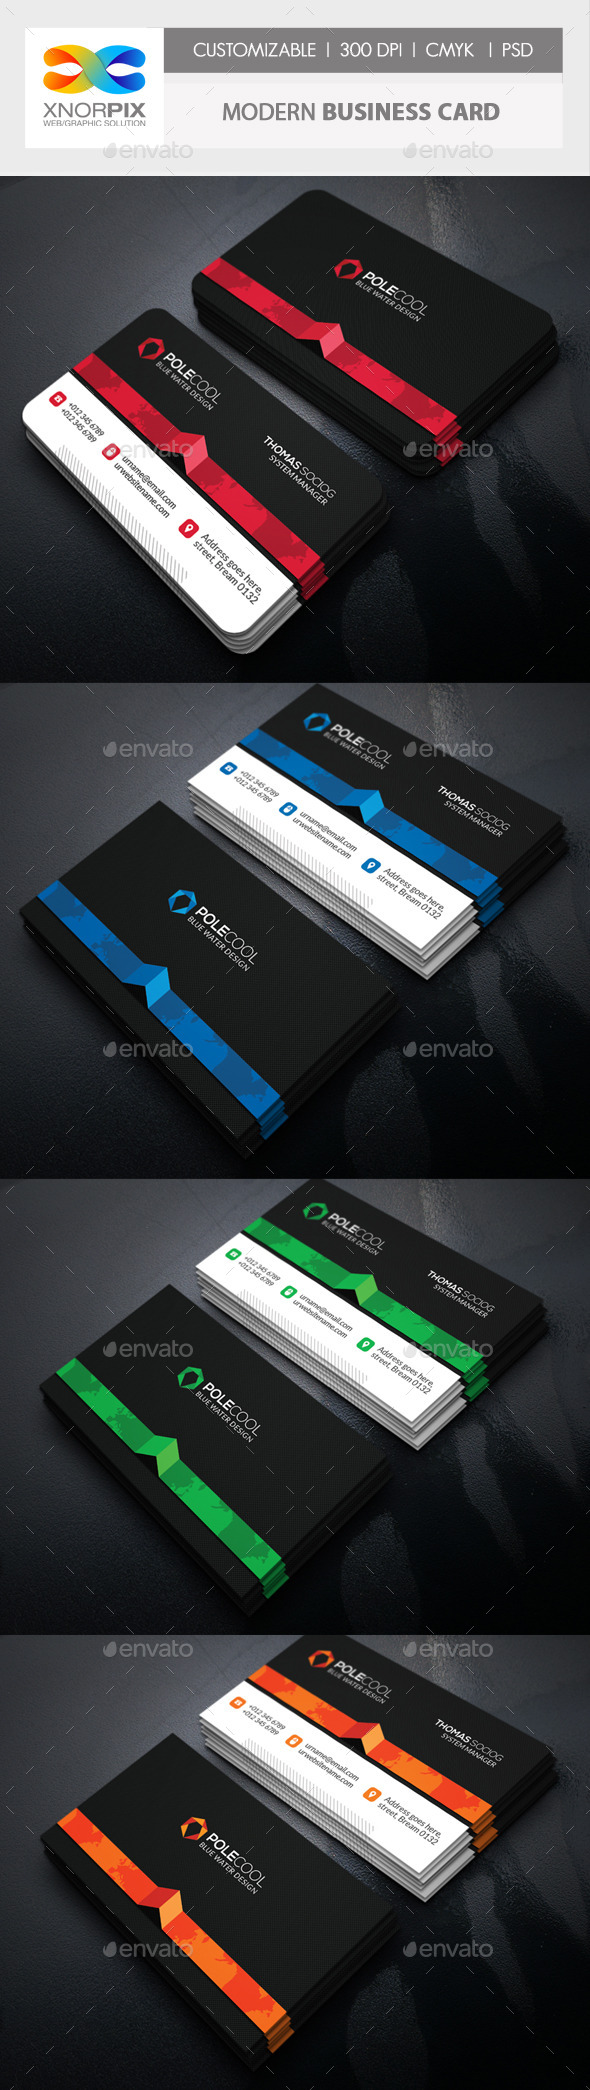 GraphicRiver Modern Business Card 11119300